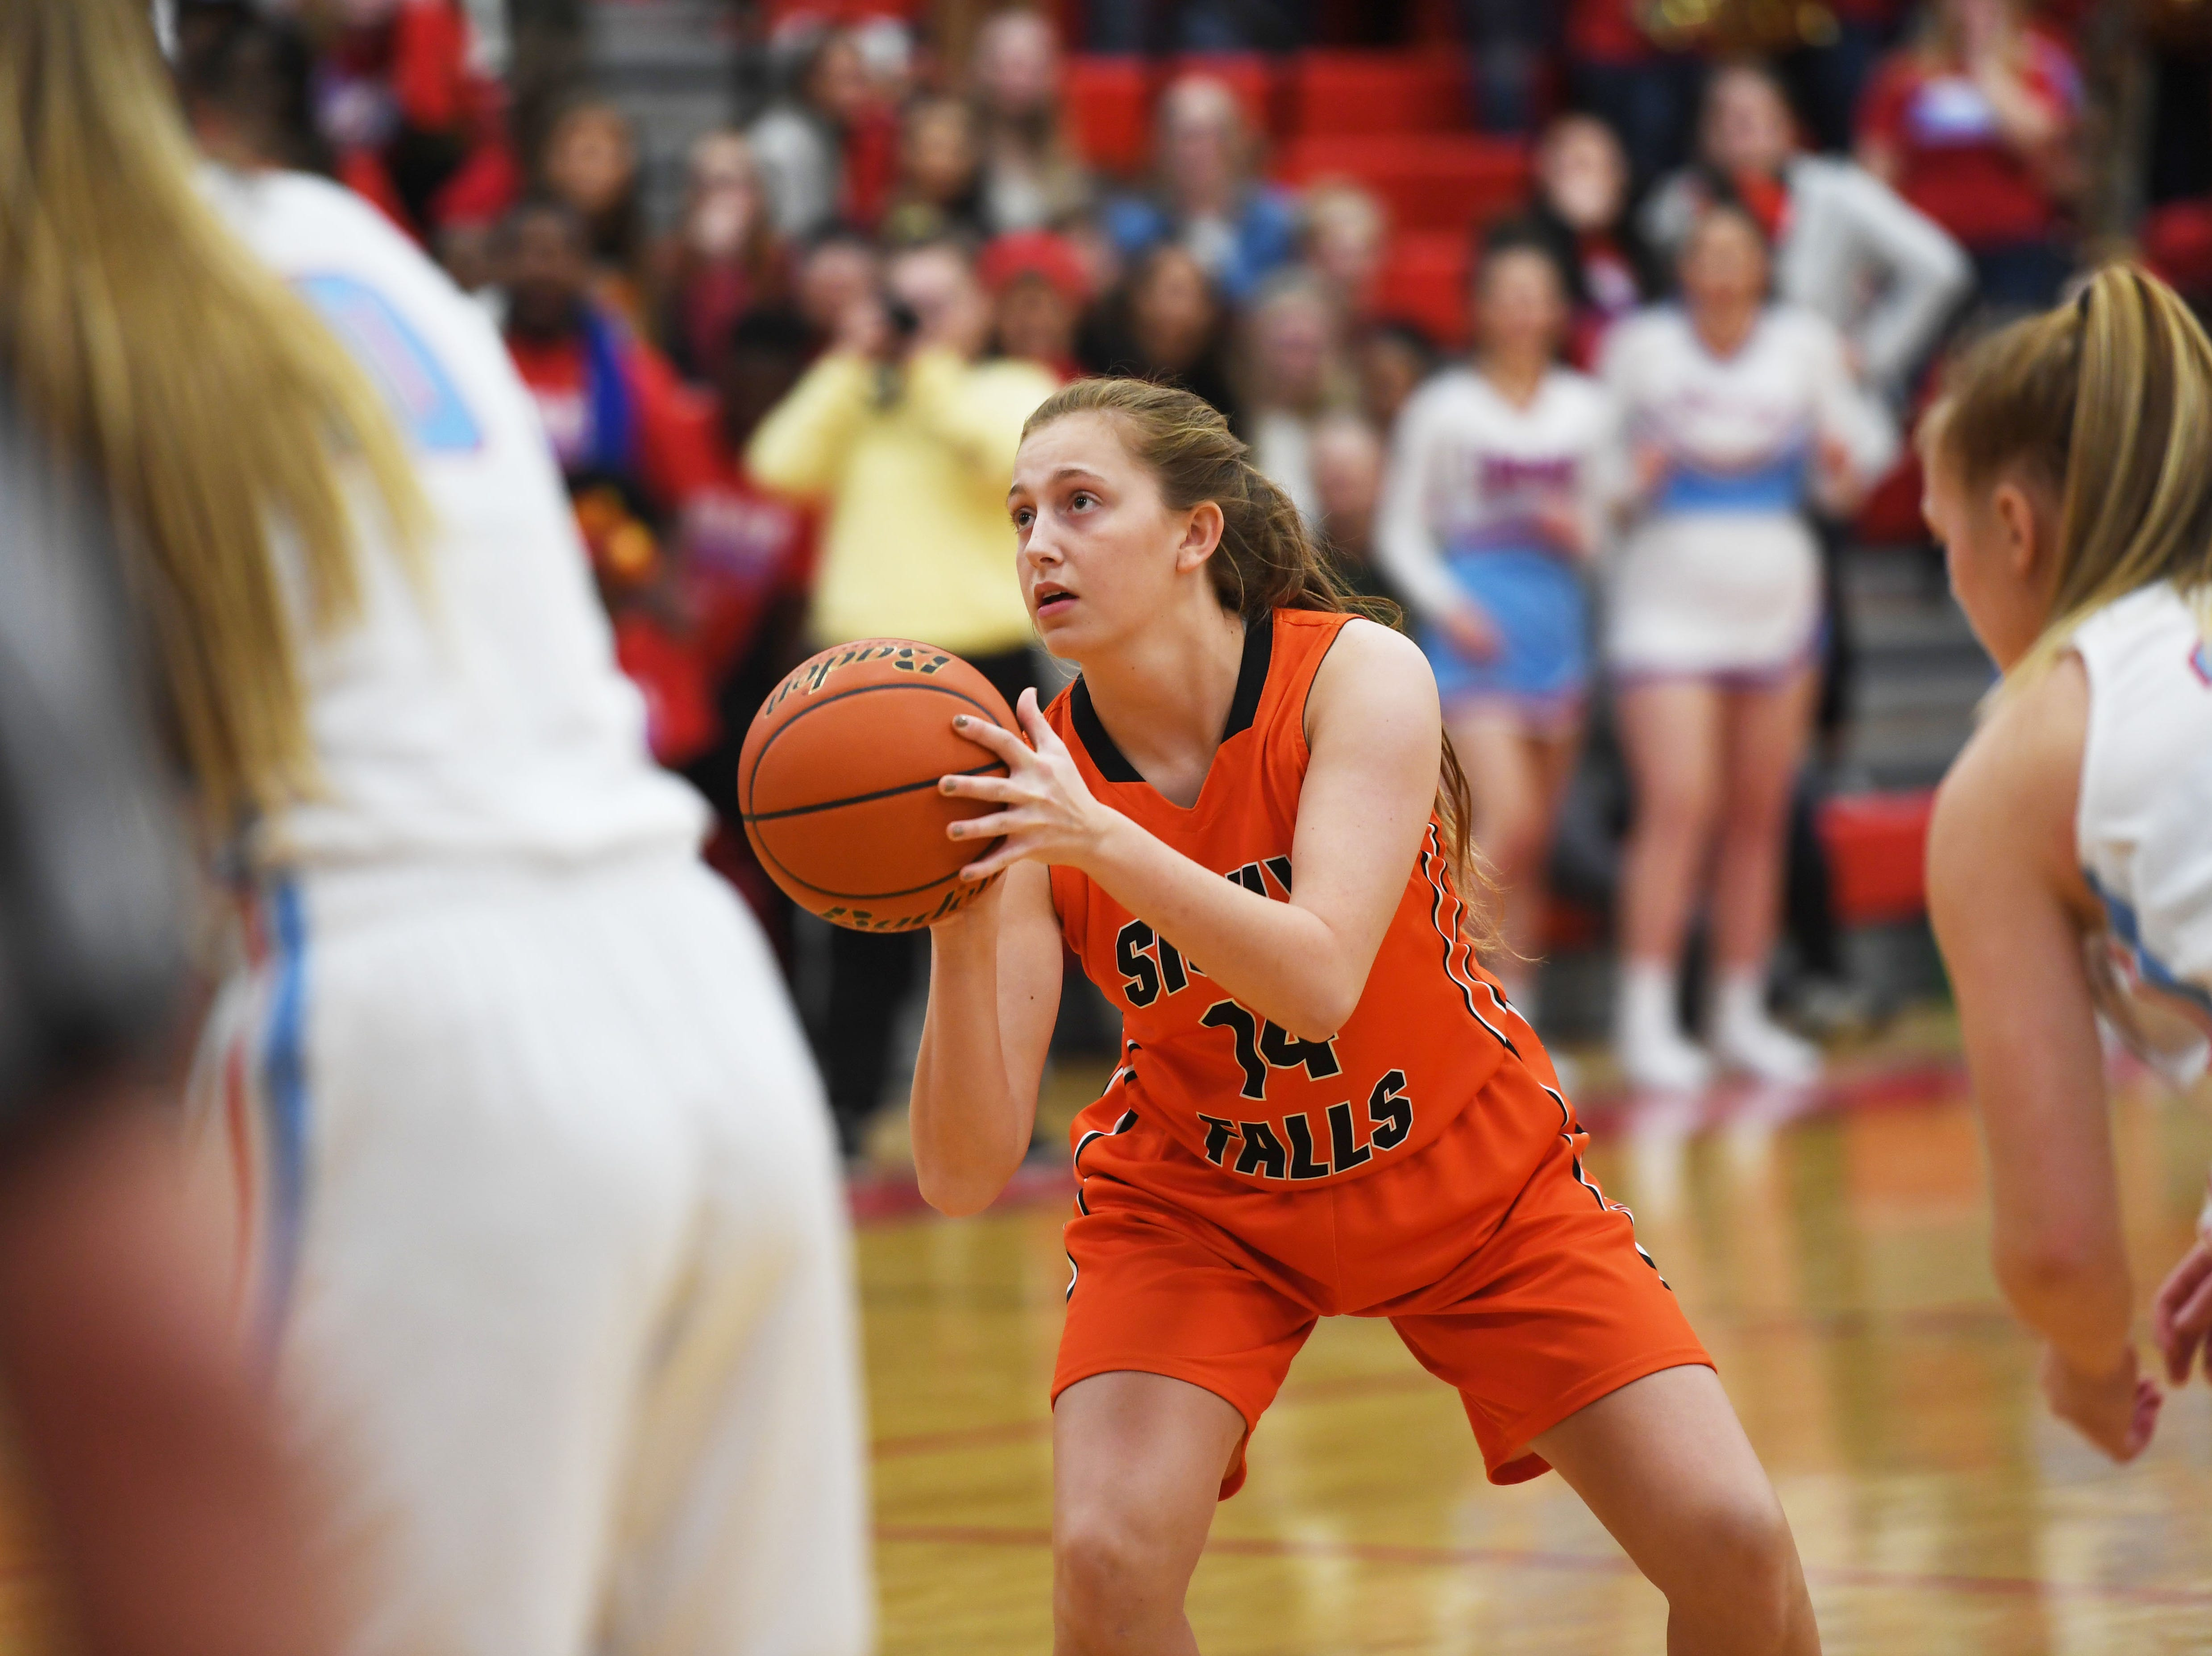 Washington's Rylyn Fink shoots a free throw during the game against Lincoln Thursday, Jan. 24, at Lincoln. Lincoln won 63-62 against Washington.